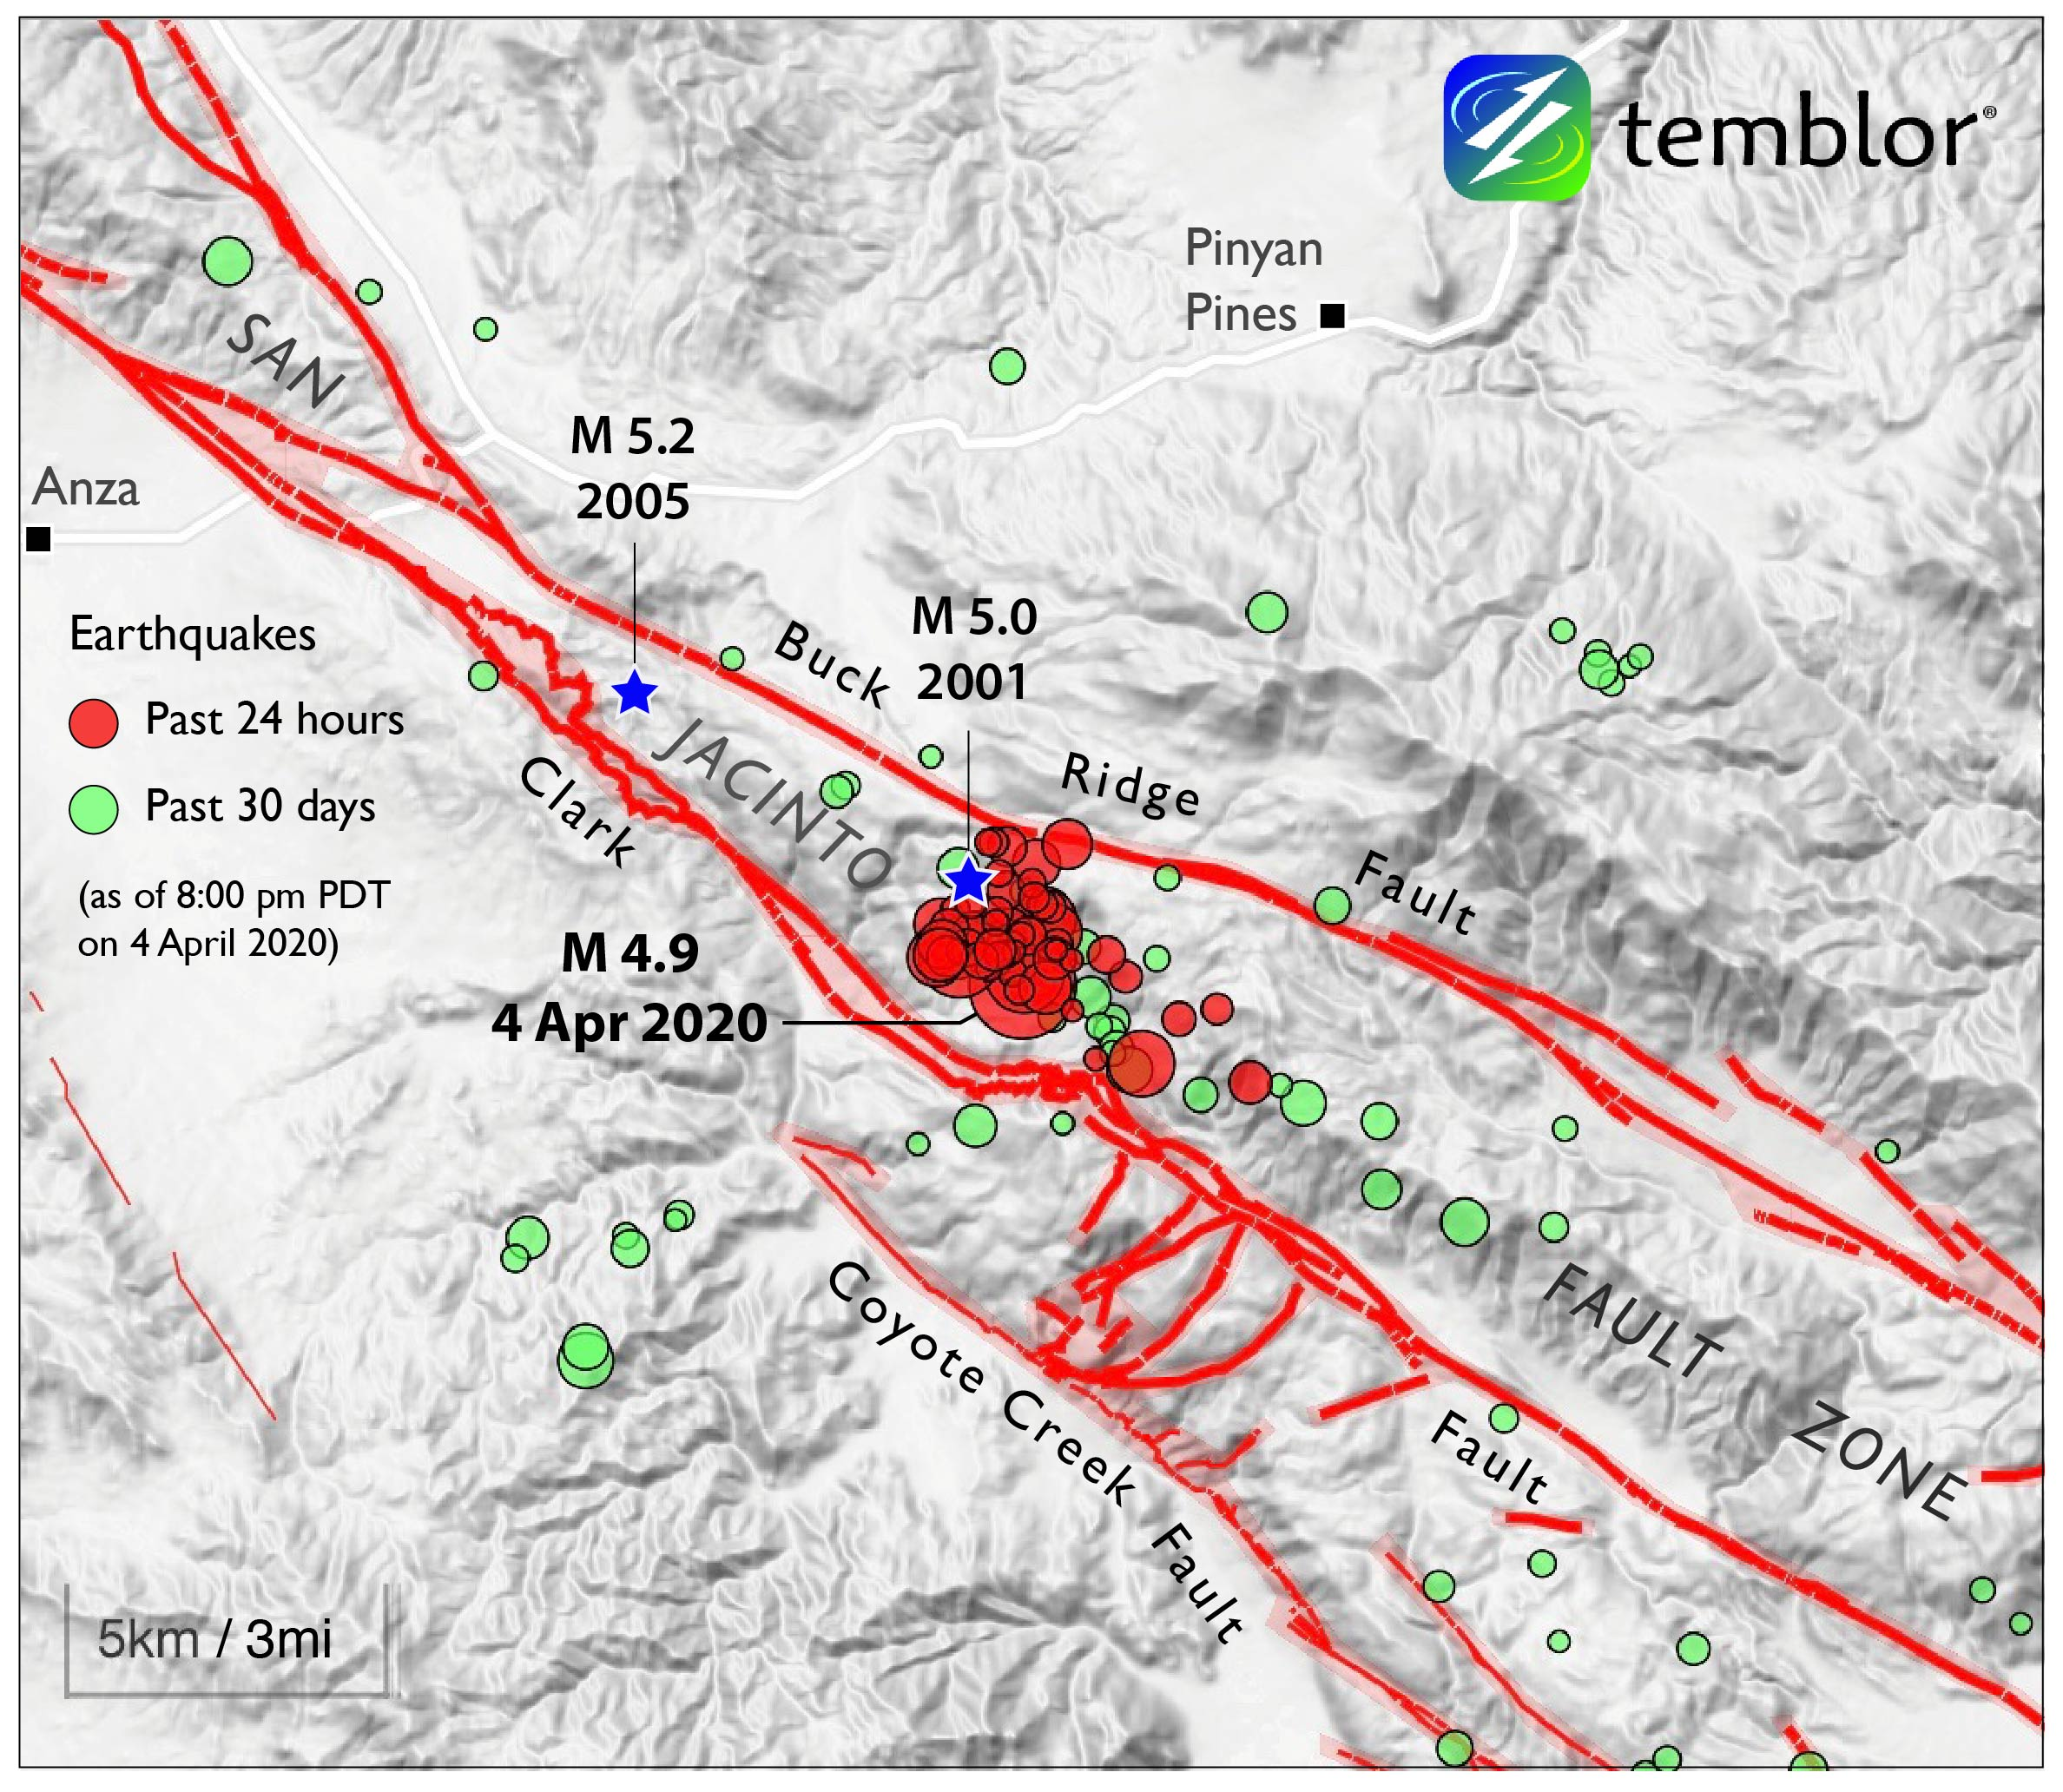 Southern California Jolted By Moderate But Intense Quake Temblor Net